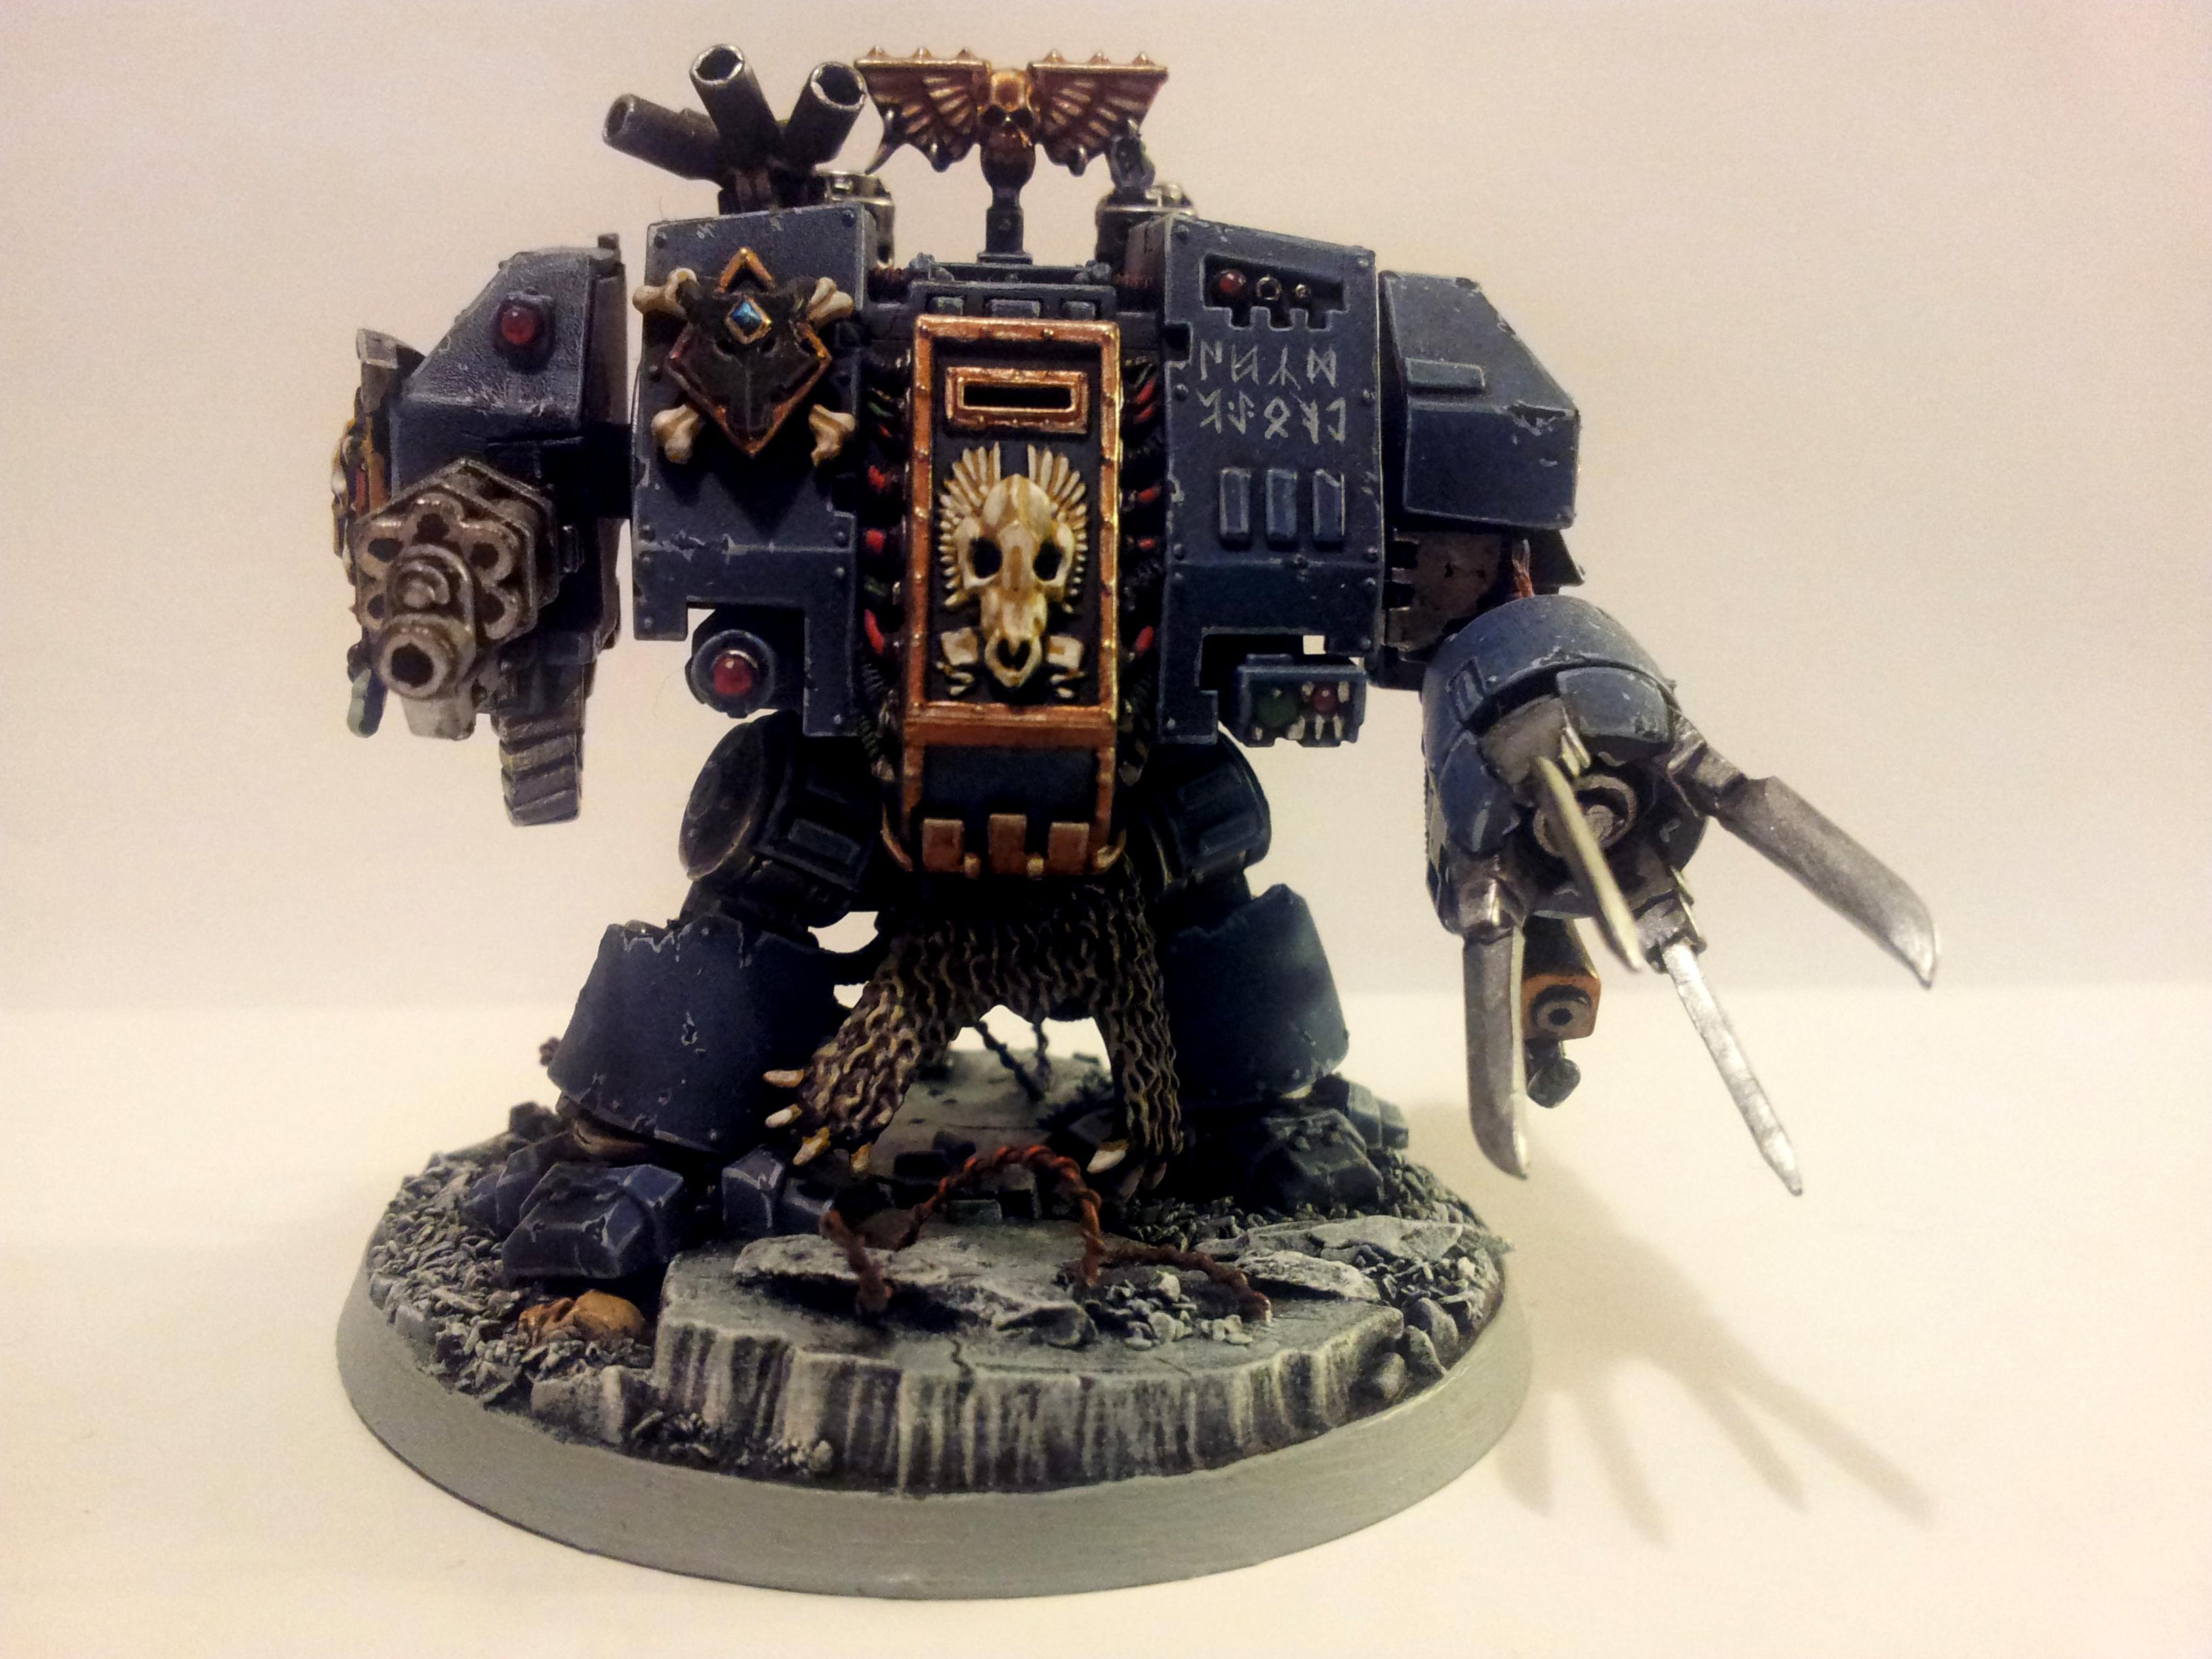 Dreadnought, Space Marines, Space Wolves, Space Wolves Dreadnought